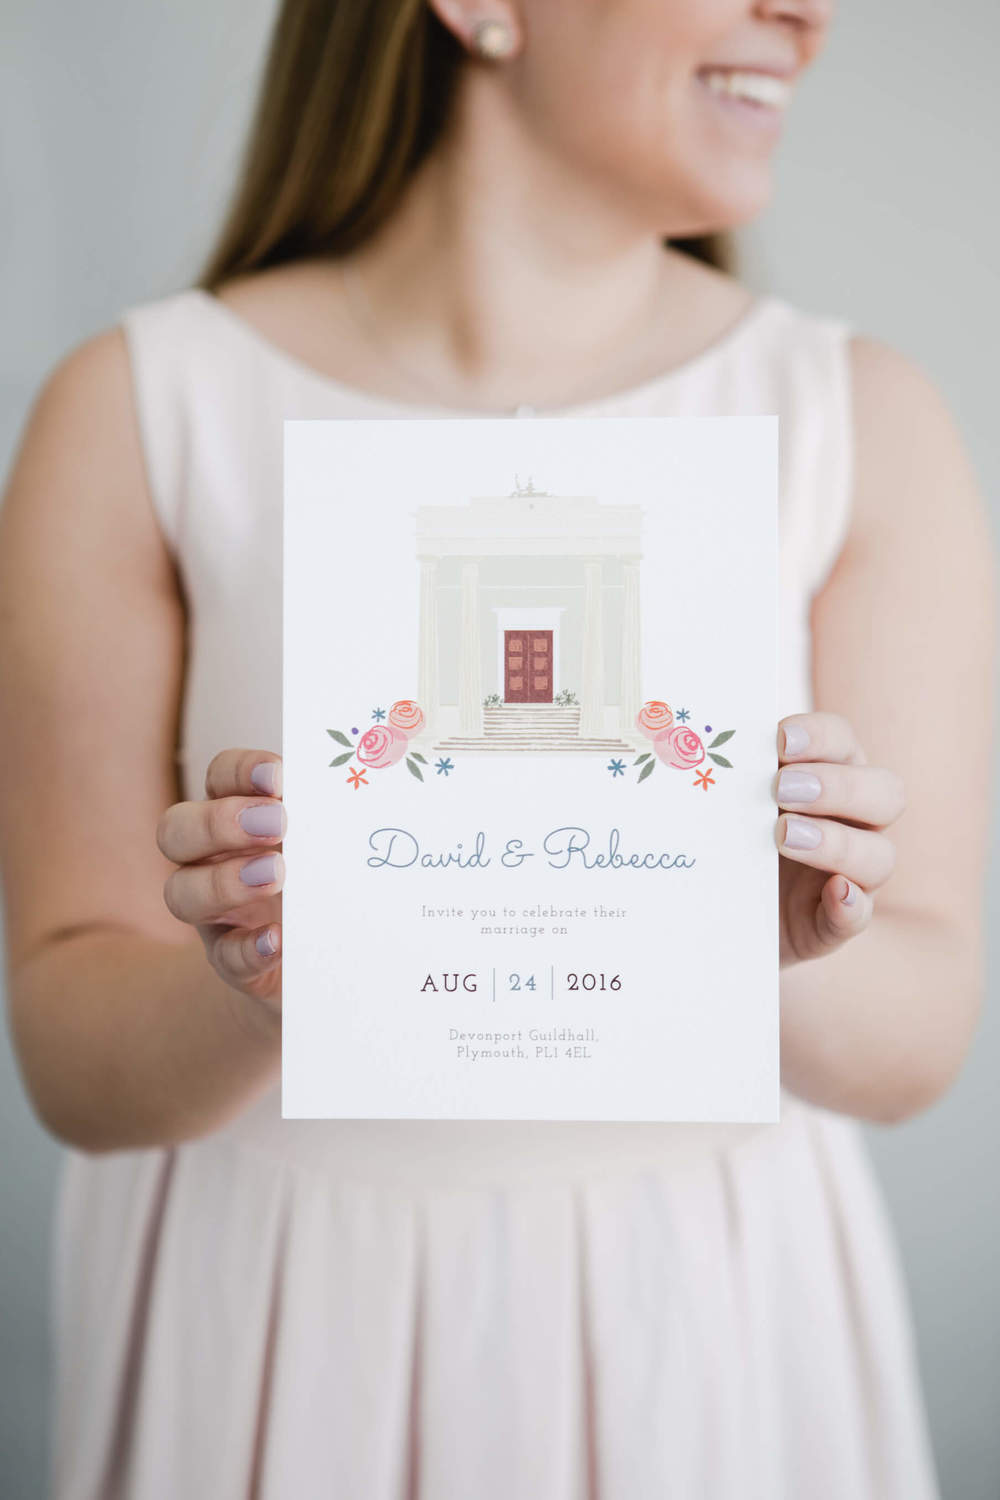 Dearly Beloved wedding invite. Photo by UpArt Photography